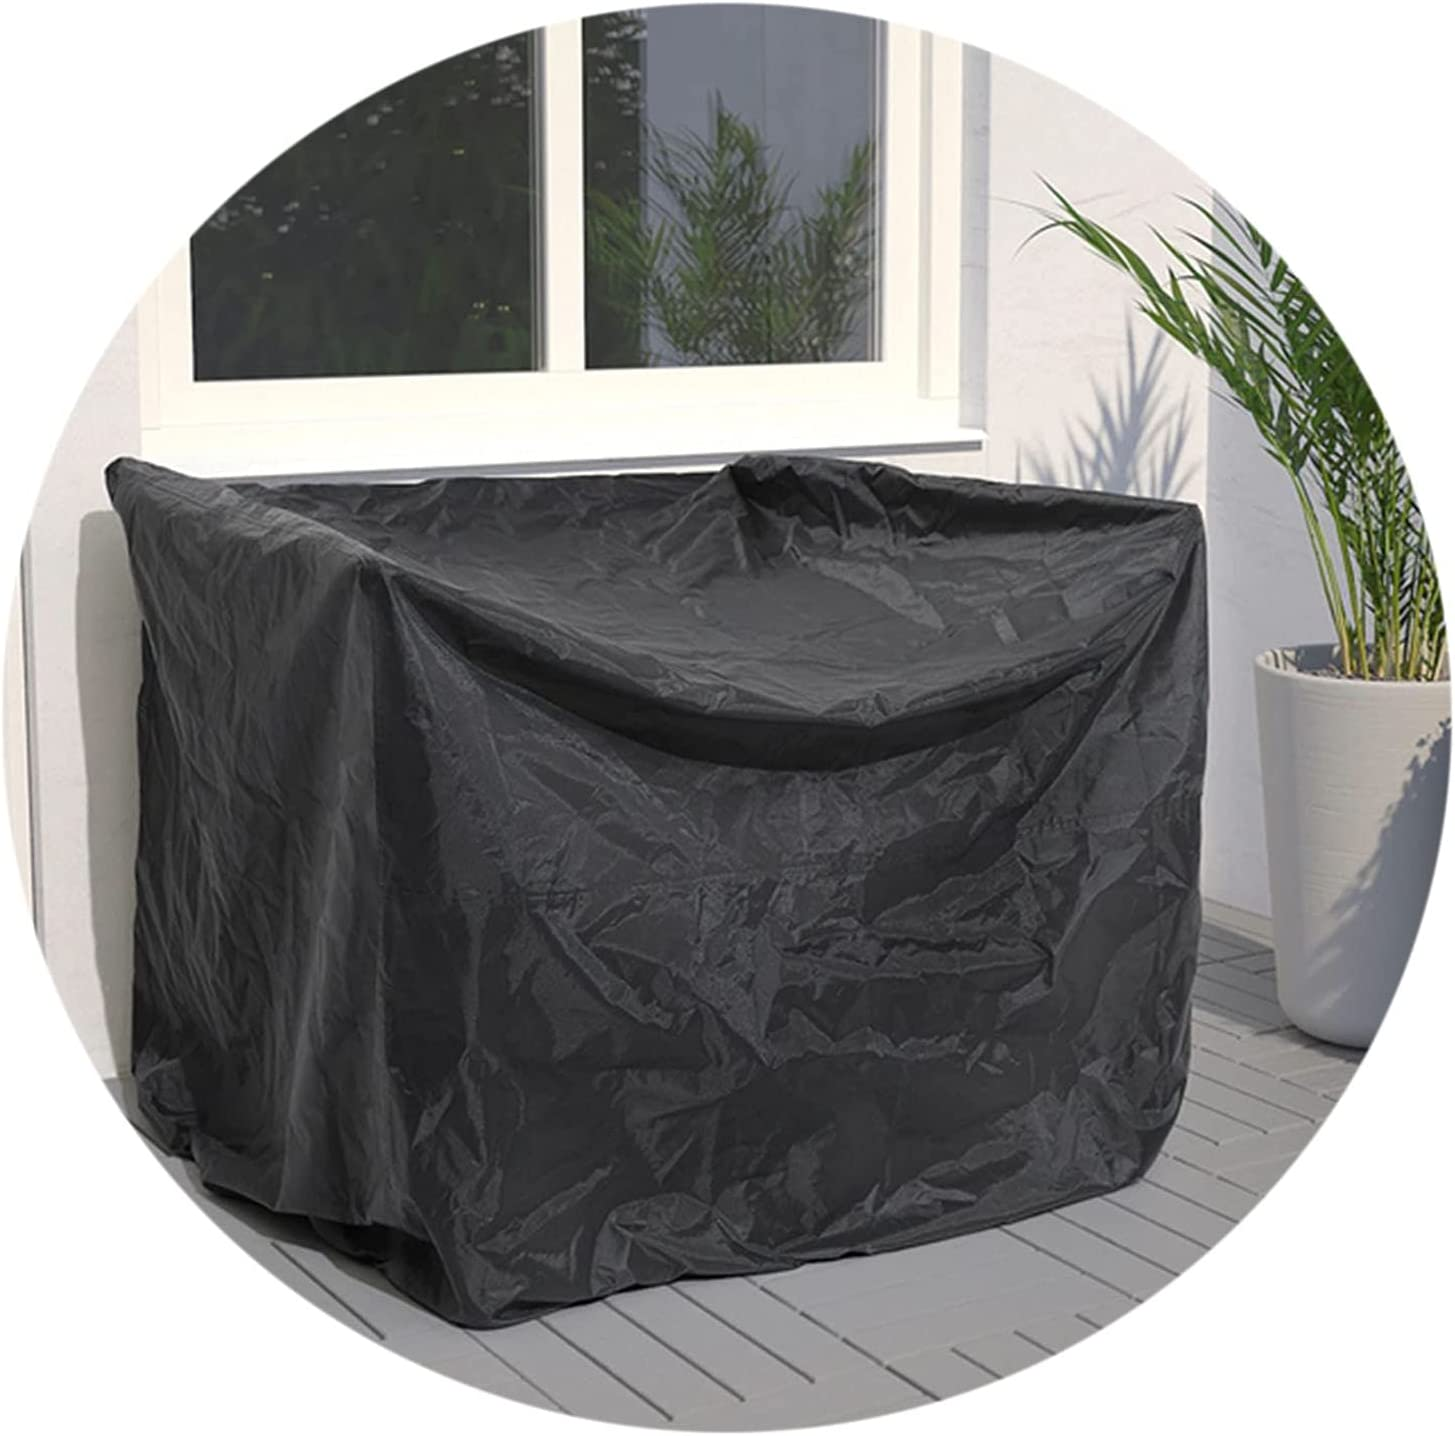 AWSAD Patio Furniture Covers Popular brand Rectangular Outdoor Table Baltimore Mall Win Cover